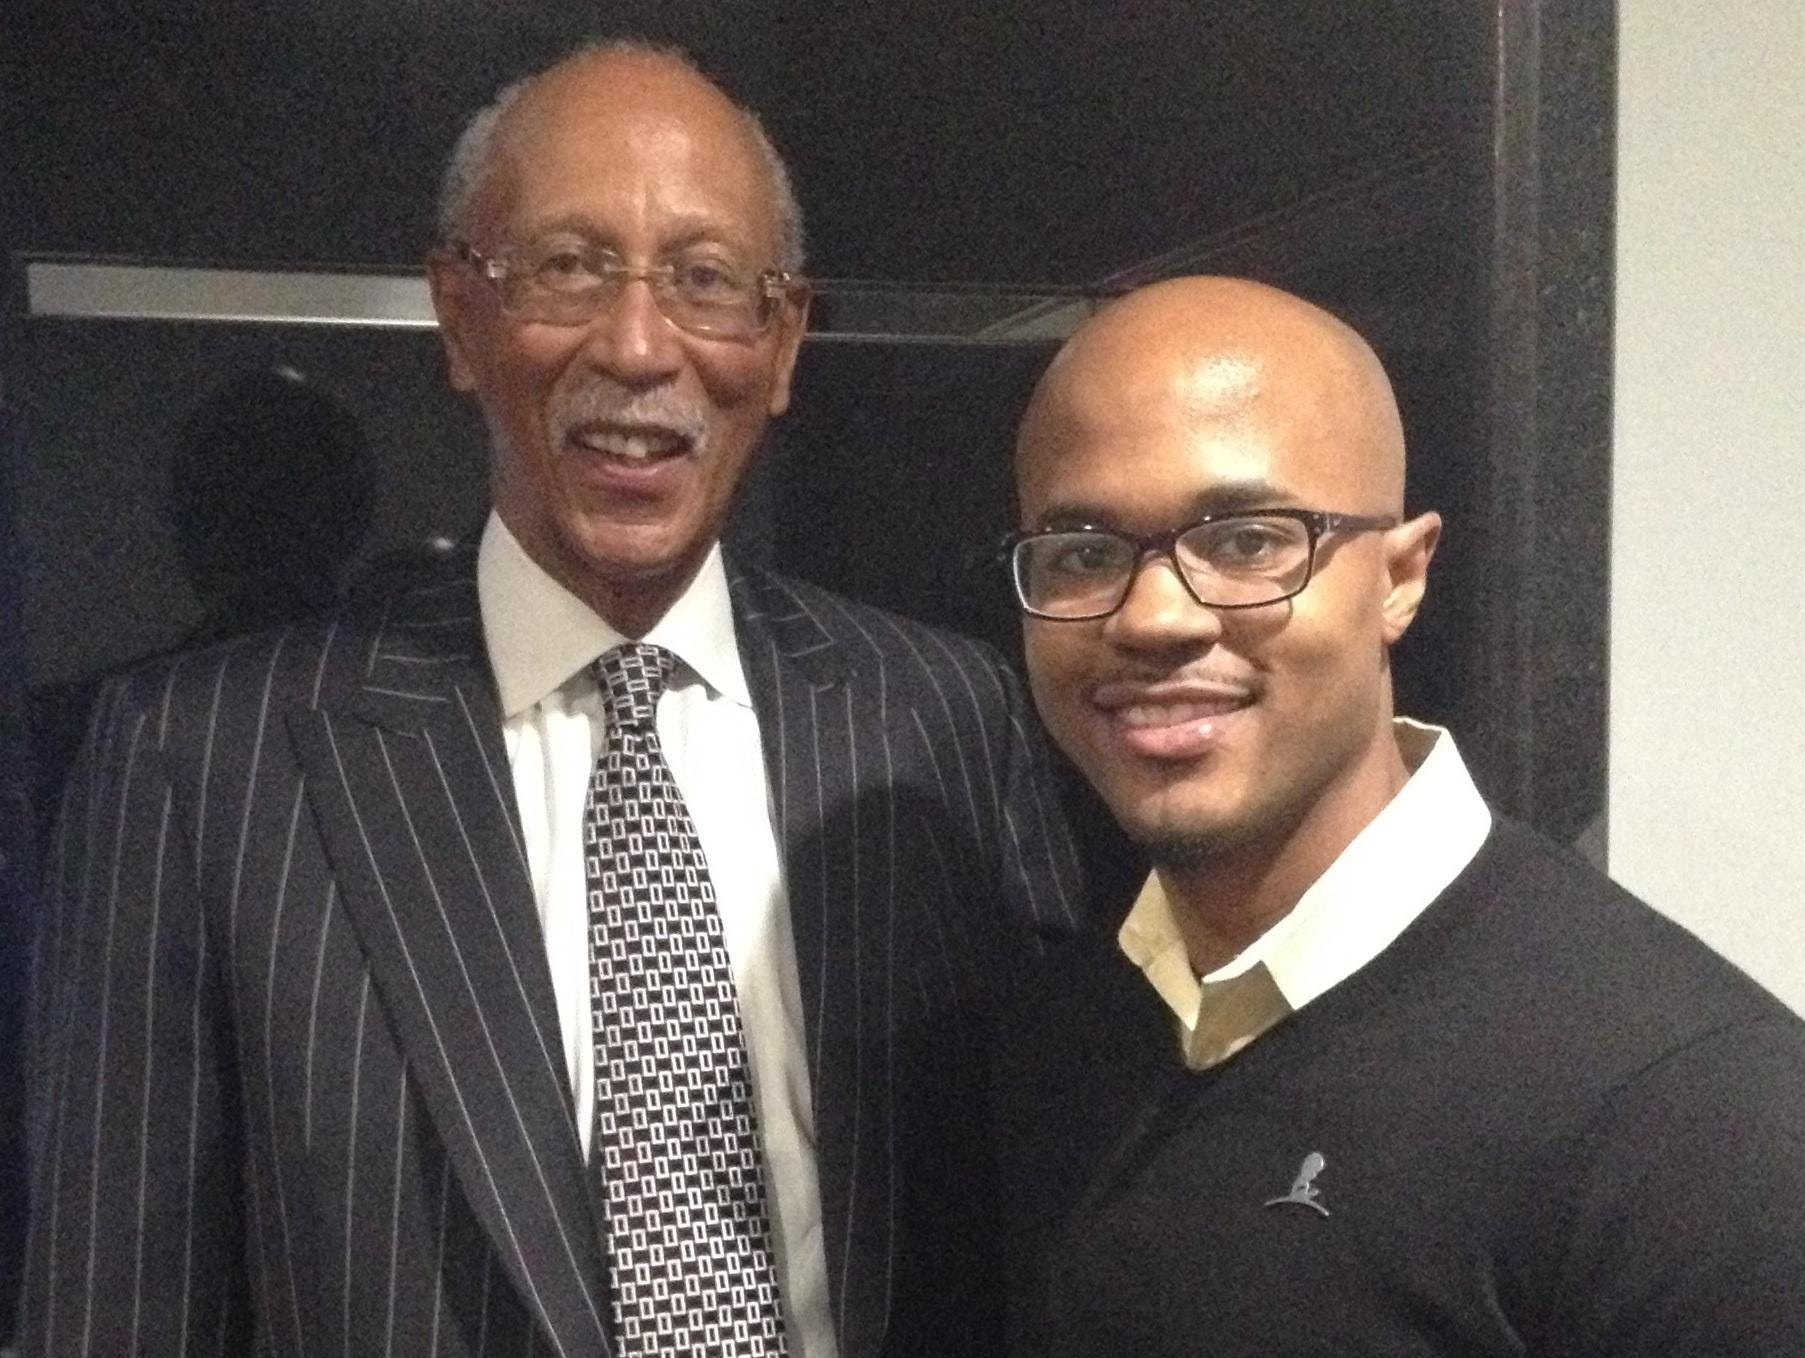 Aaron Smith is pictured with former Detroit Mayor and Pistons great Dave Bing.